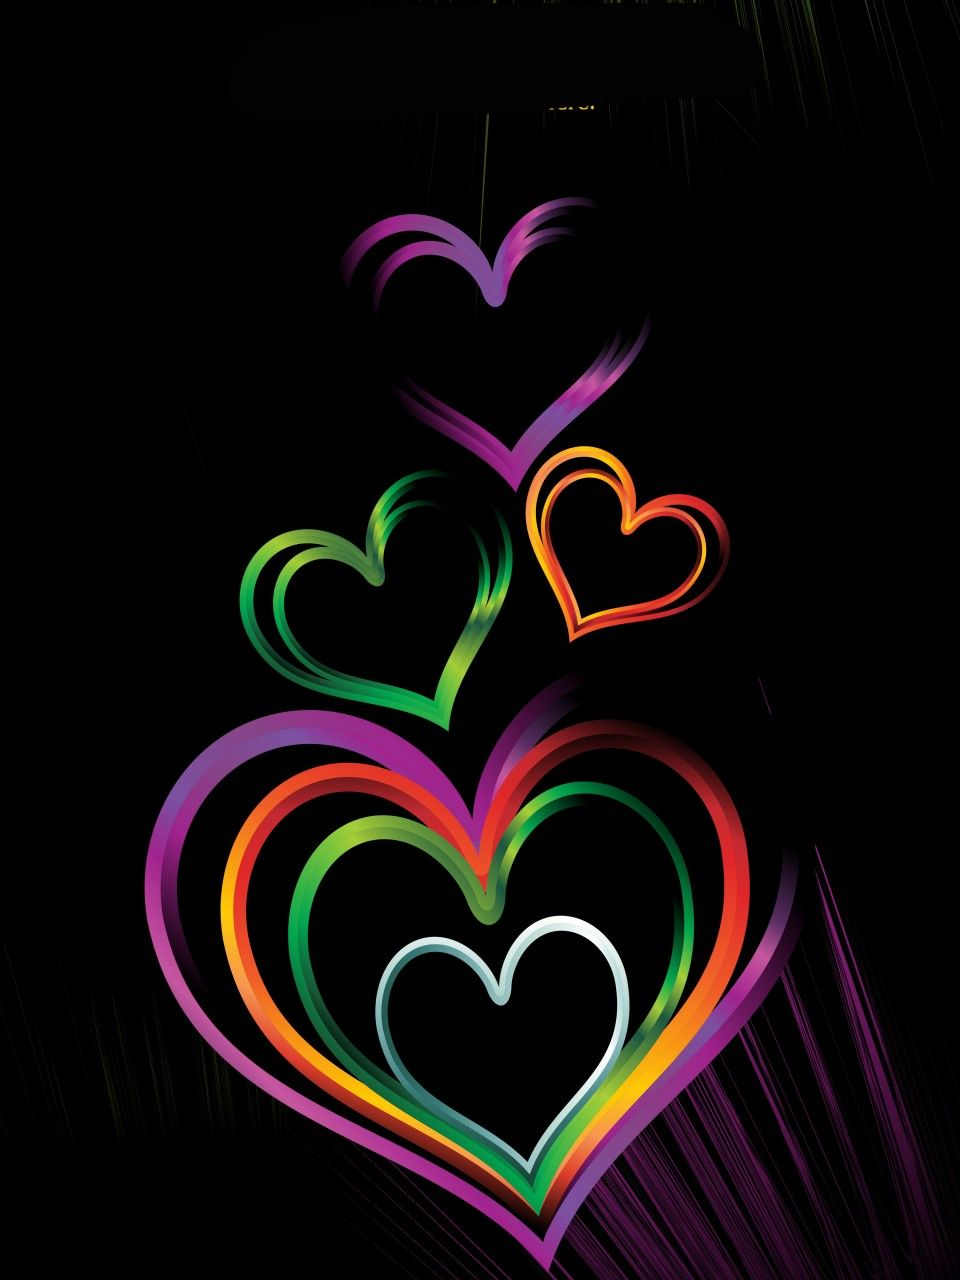 Colorful Heart Backgrounds | Colorful Heart on Black Background B | Hearts | Heart background ...